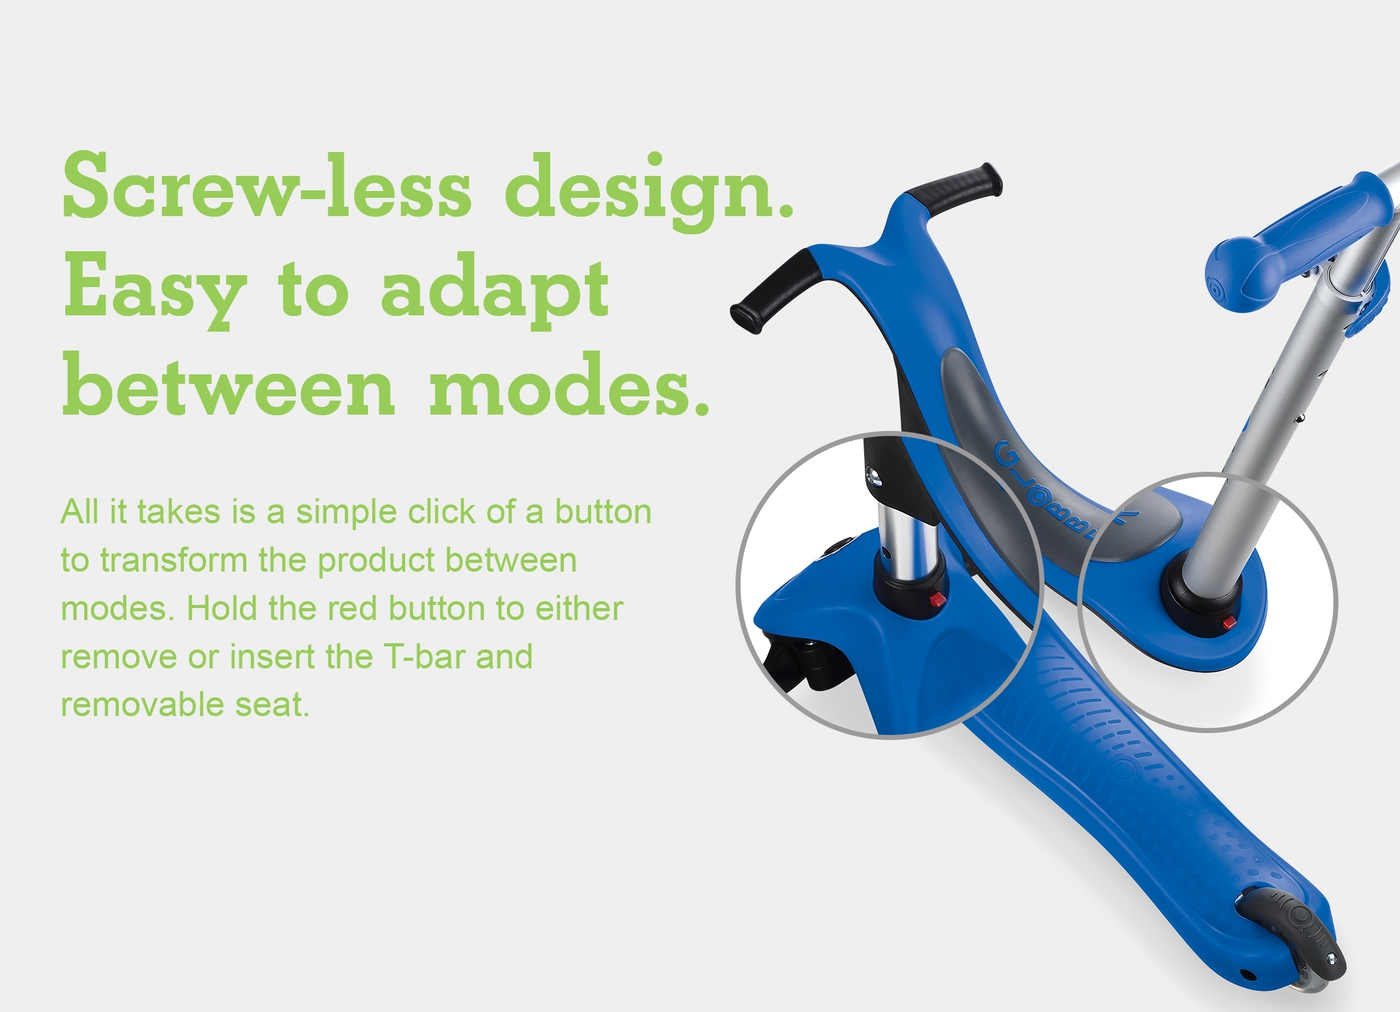 Screw-less design. Easy to adapt between modes.